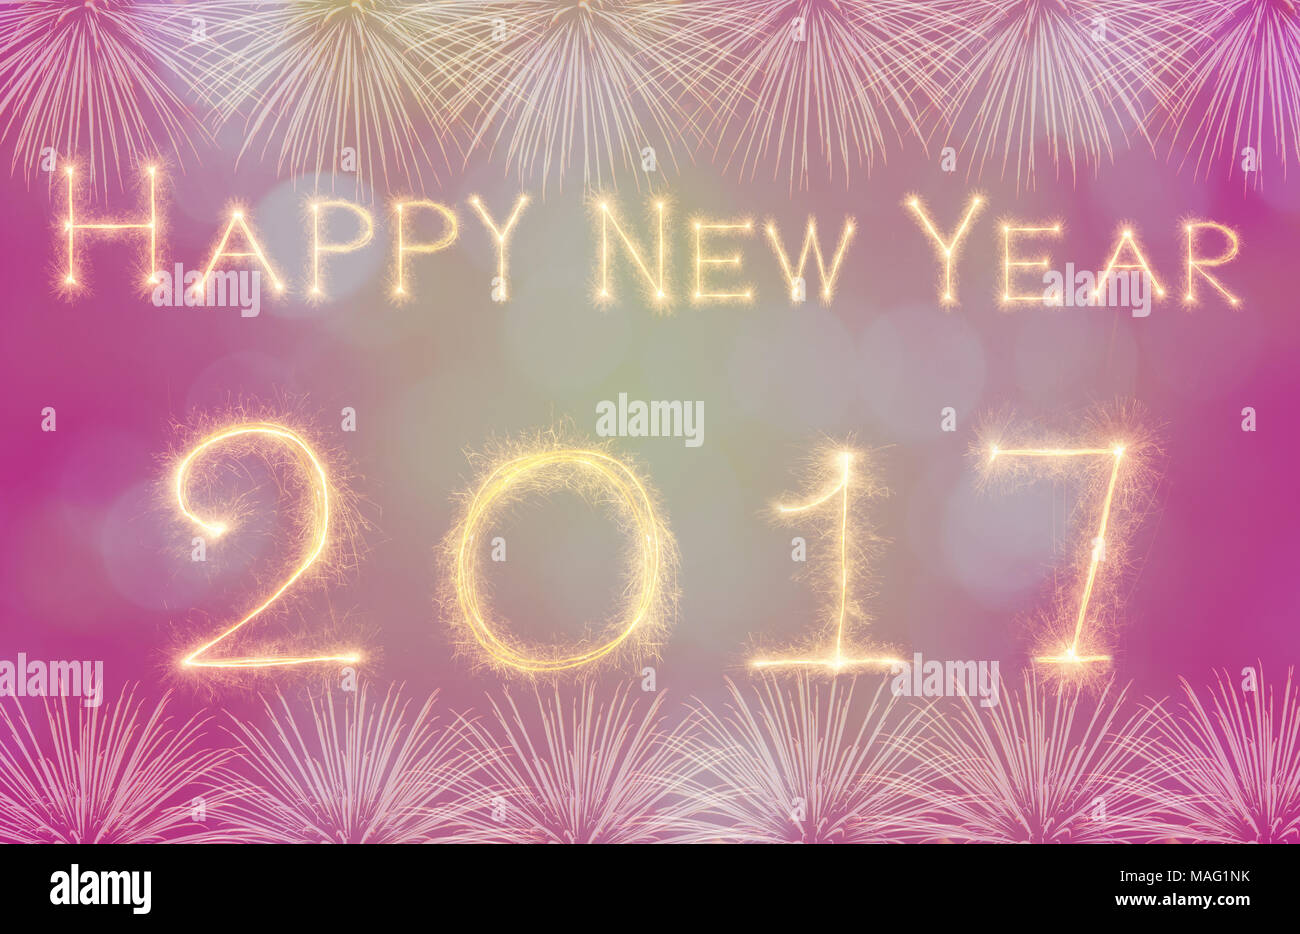 Happy new year 2017 written with sparkle firework on black happy new year 2017 written with sparkle firework on black background celebration and greeting cards concept m4hsunfo